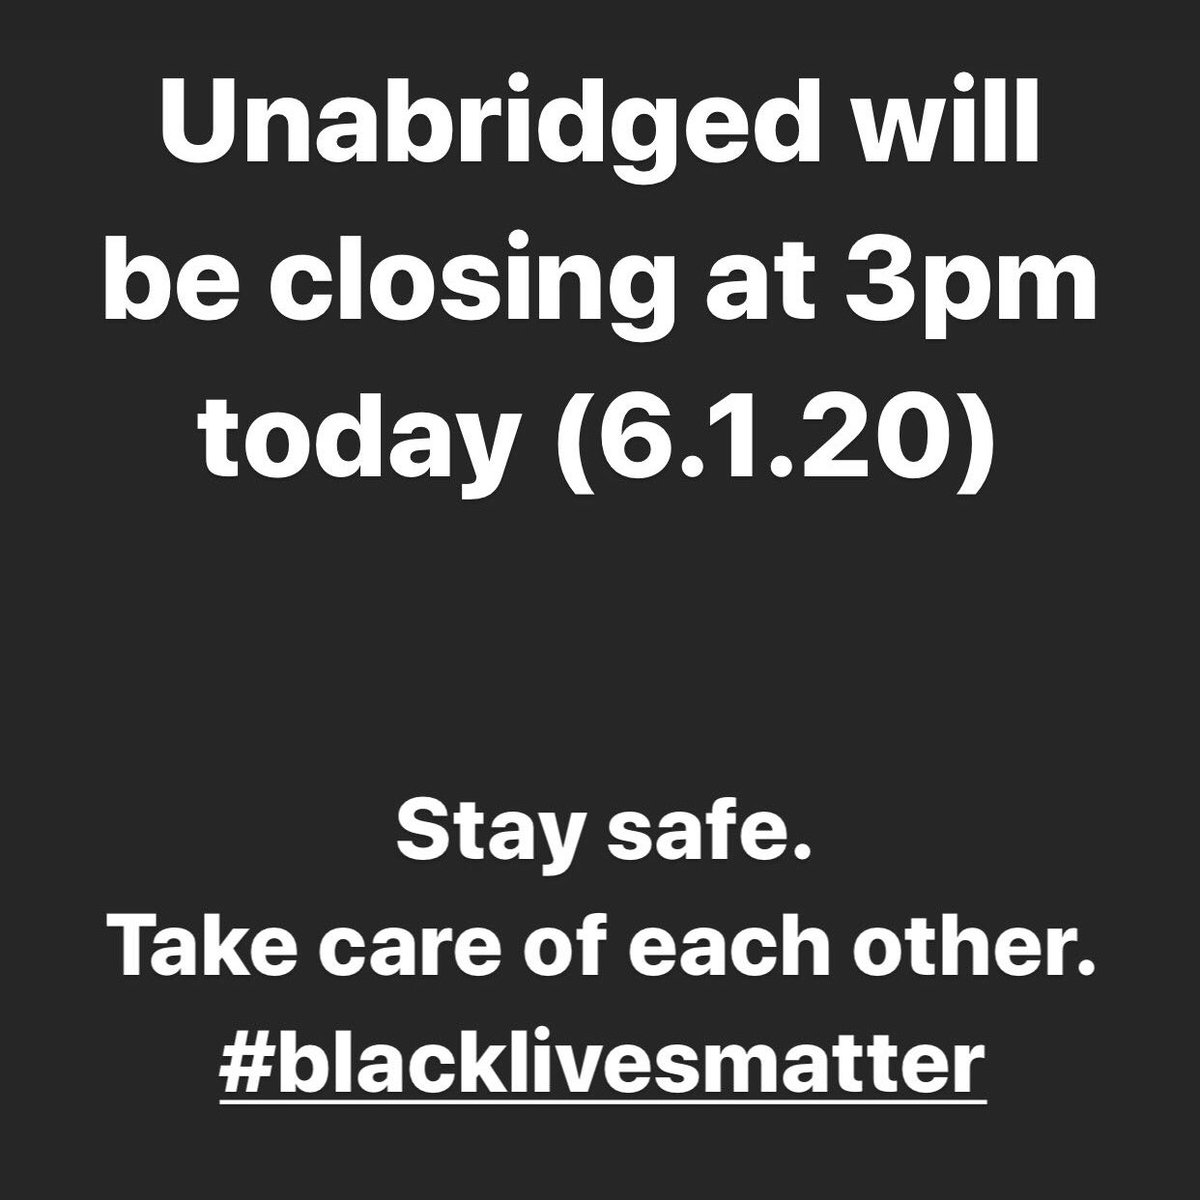 We're closing up early today. #BlackLivesMatter